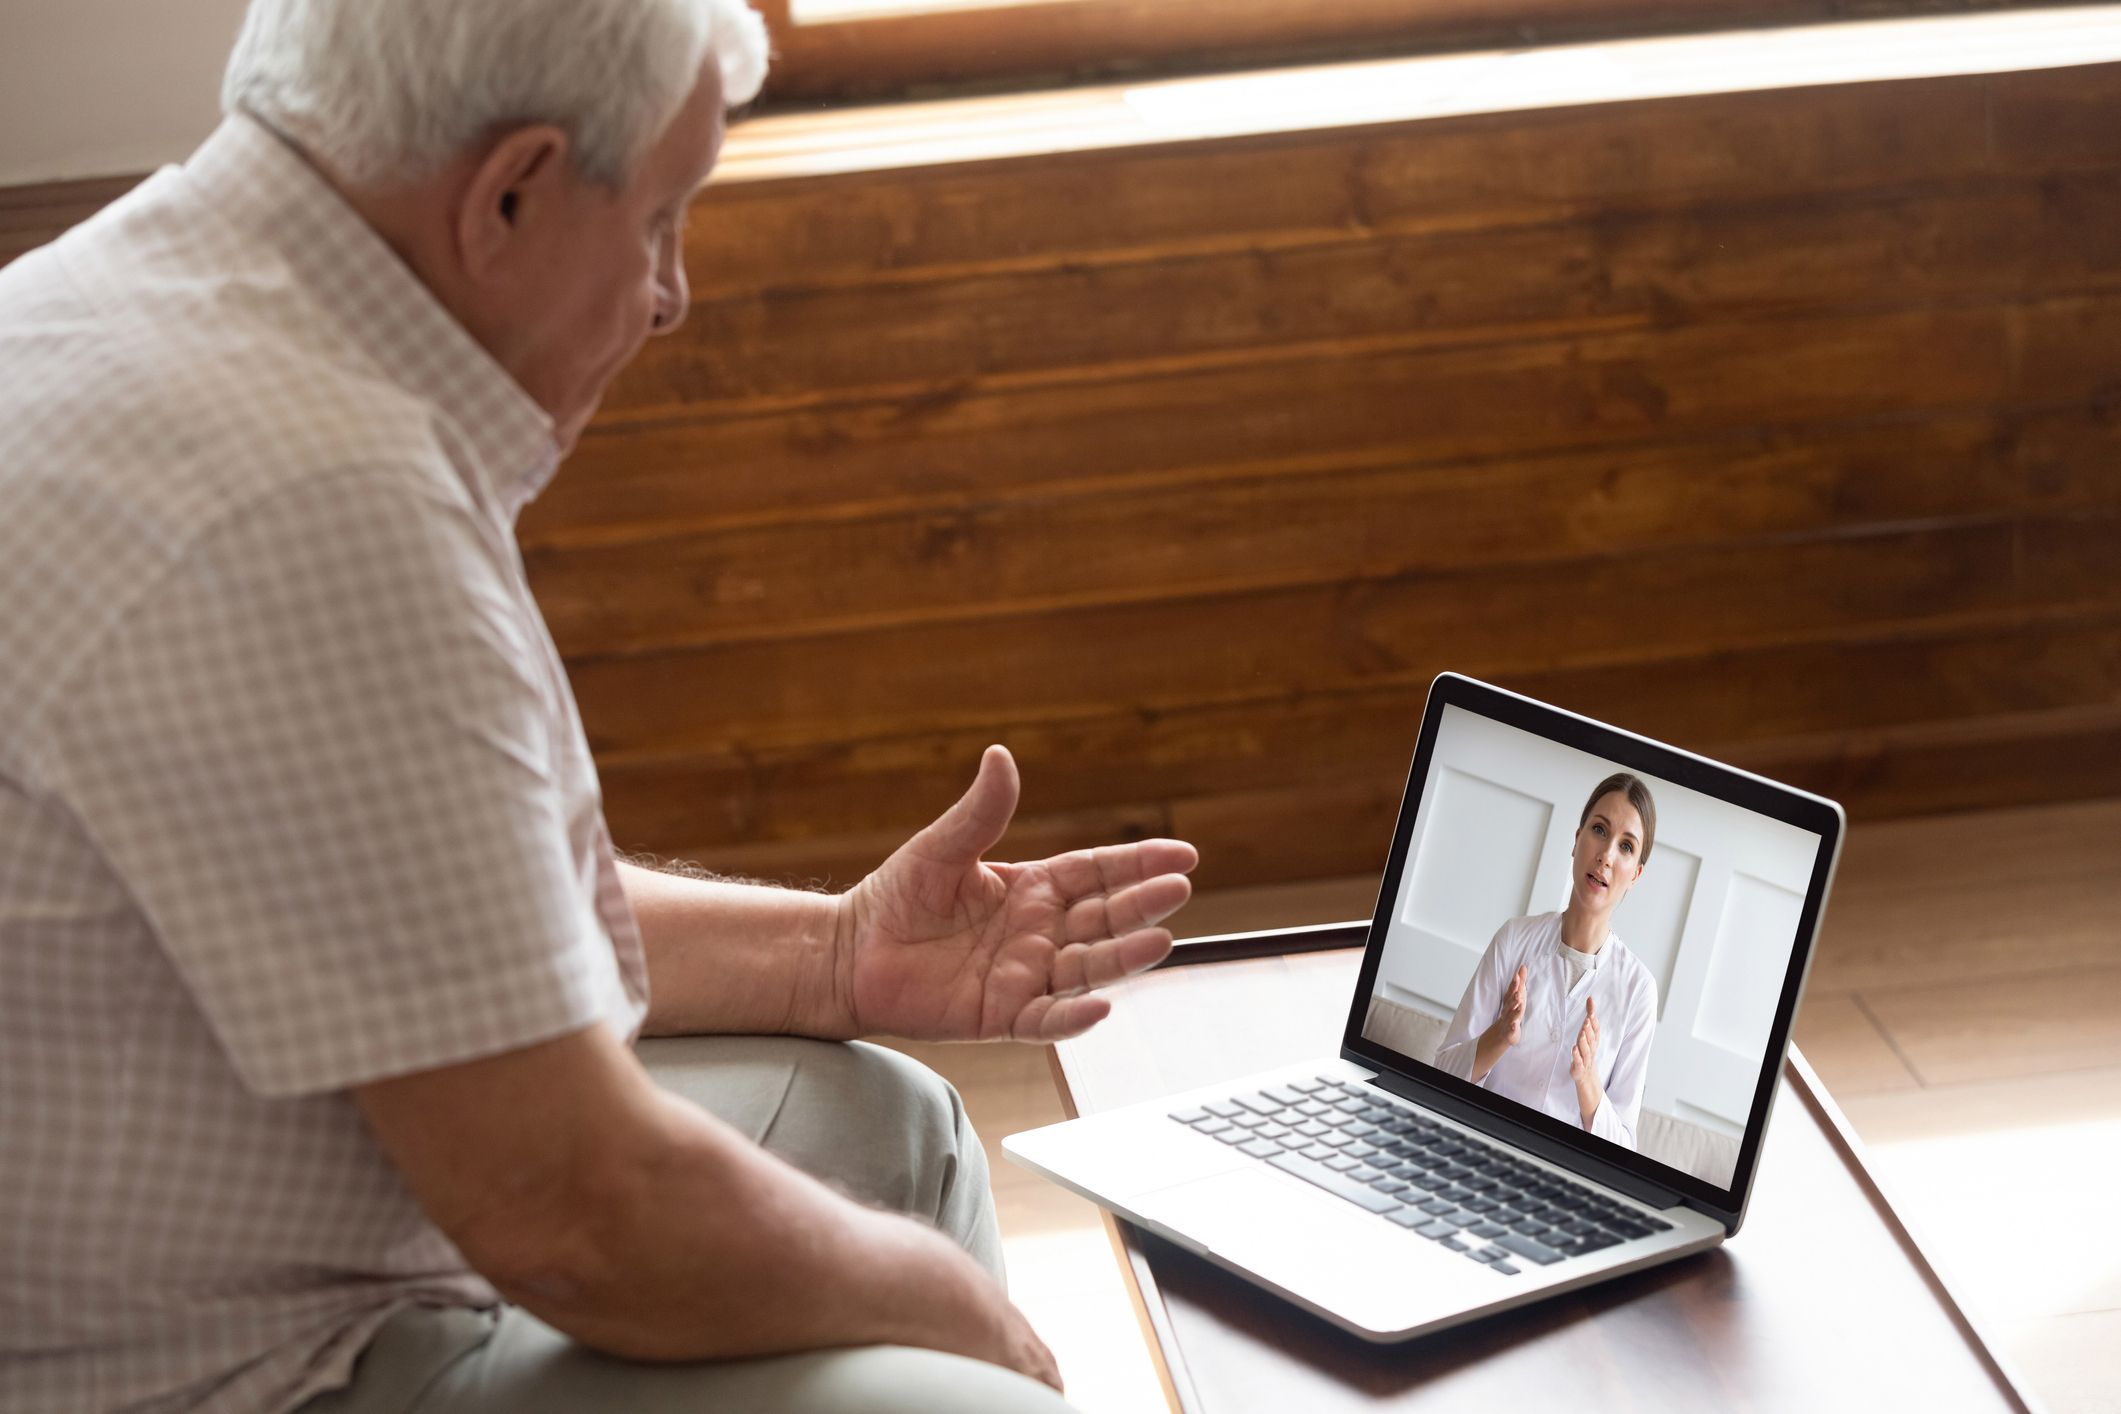 doctor-patient video teleconference